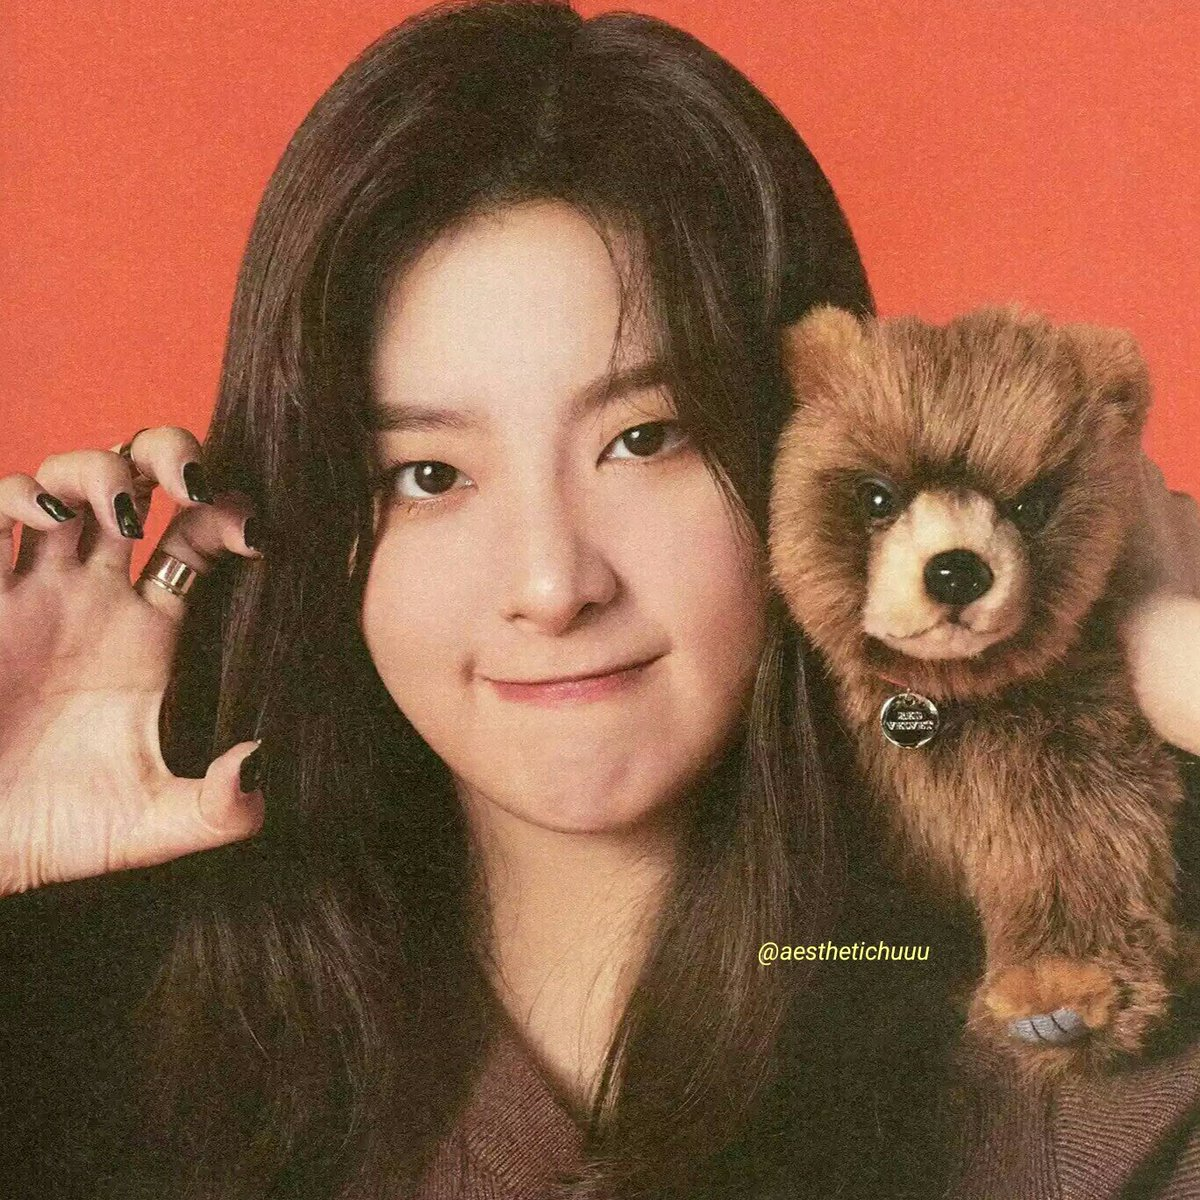 blablablabla on twitter redvelvet seulgi aesthetic pack icons don t remove watermark rt give for save or use it dm for request kpop redvelvet seulgi kangseulgi redvelvet seulgi aesthetic pack icons